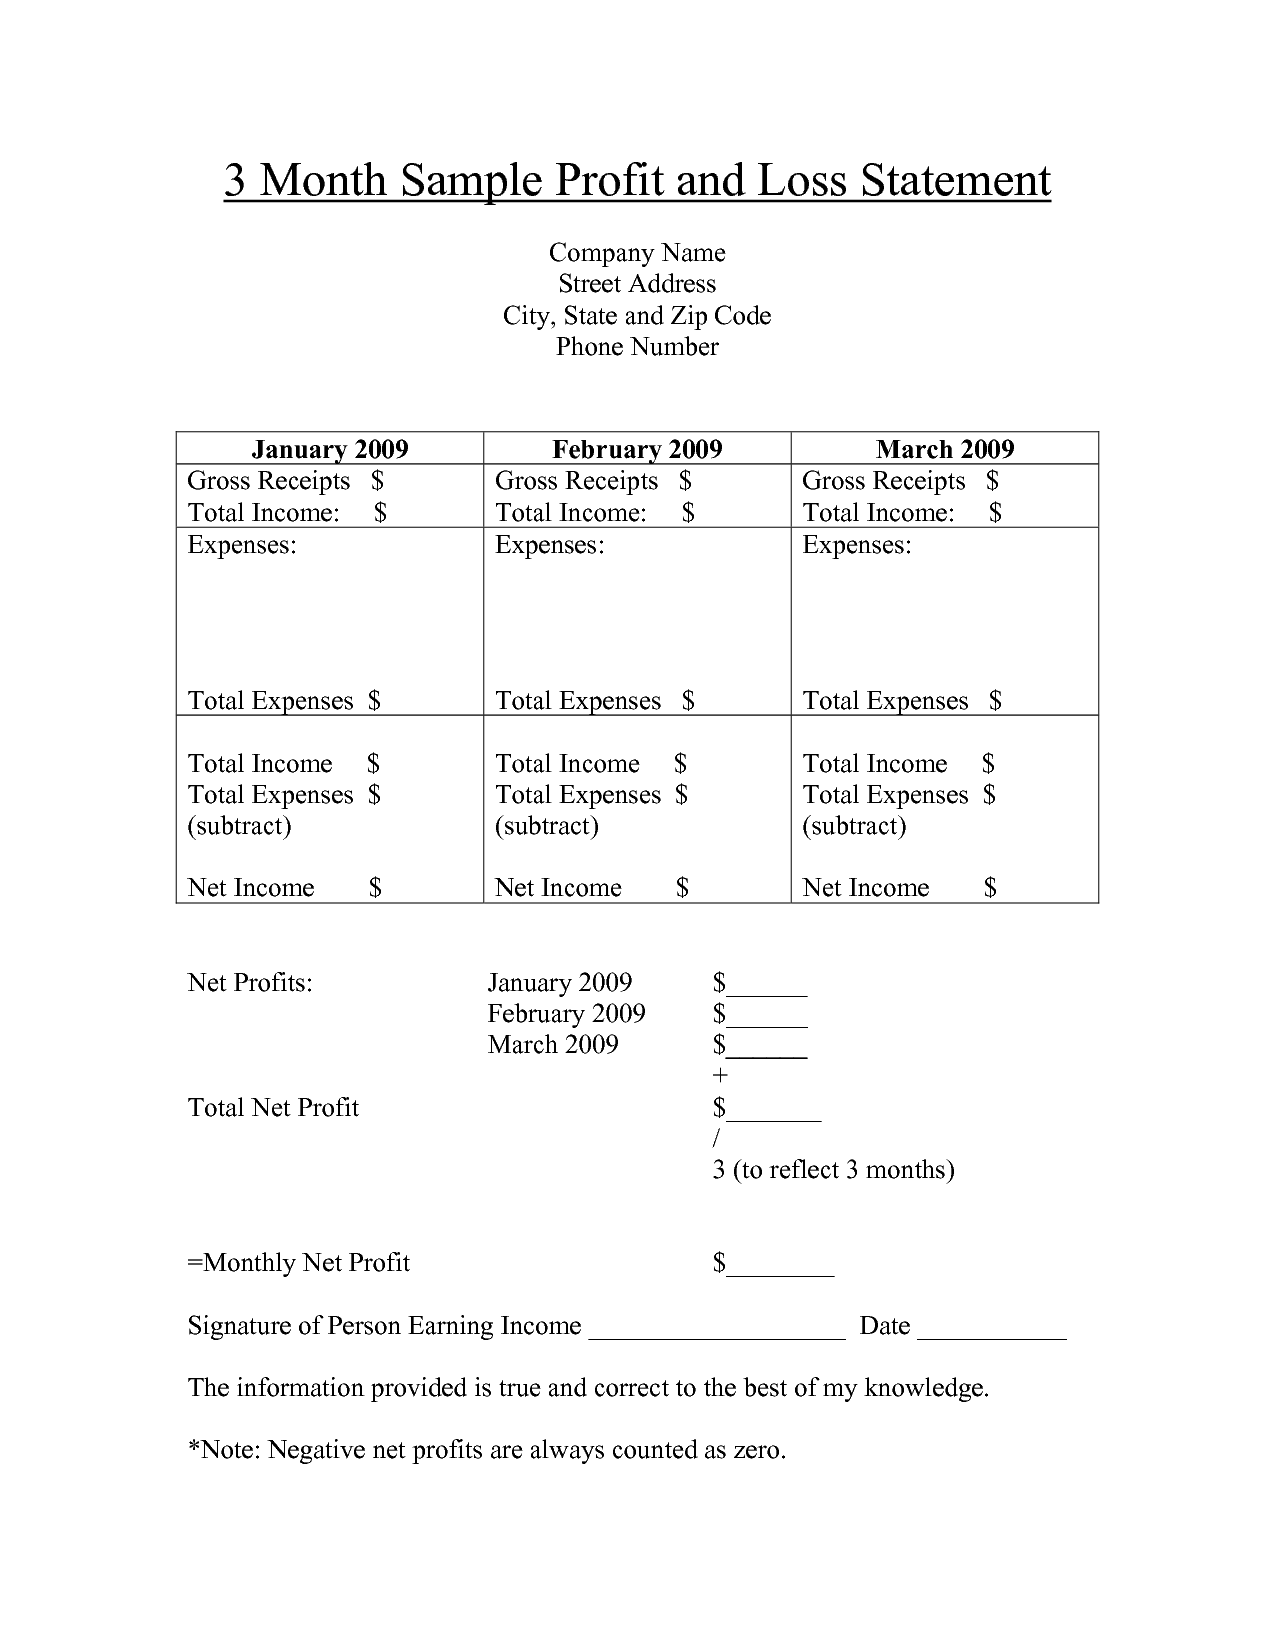 Free Printable Profit and Loss Statement Form for Home Care Bing – Basic Profit and Loss Statement Template